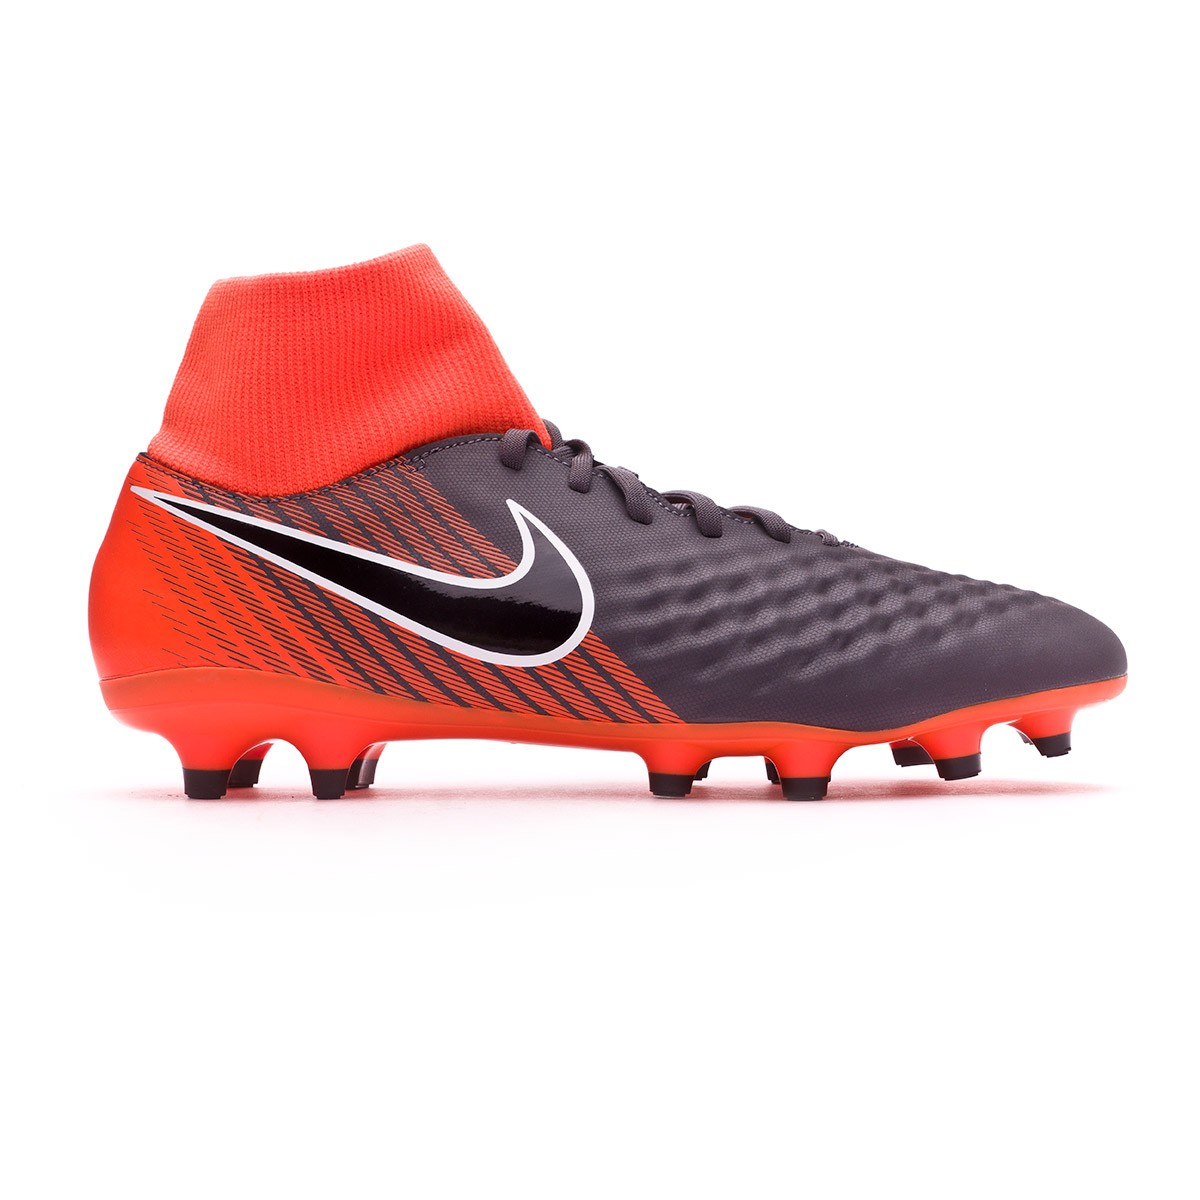 brand new bbf9d 6c46a Zapatos de fútbol Nike Magista Obra II Academy DF FG Dark grey-Black-Total  orange-White - Soloporteros es ahora Fútbol Emotion